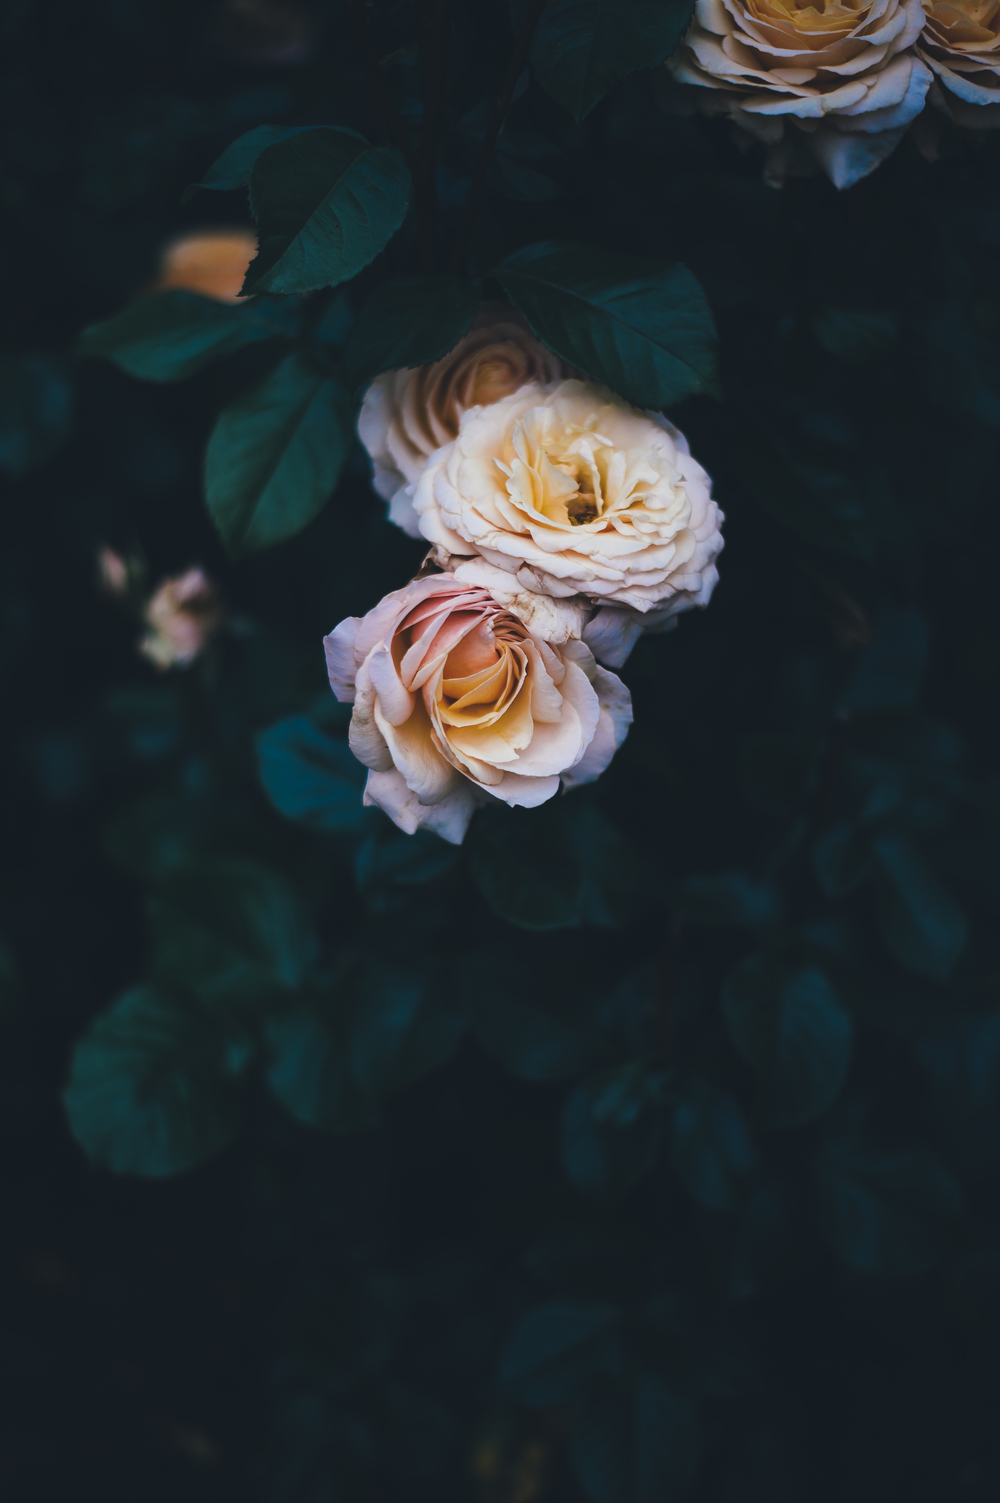 Roses - photo via Annie Spratt, FableandFolk.com